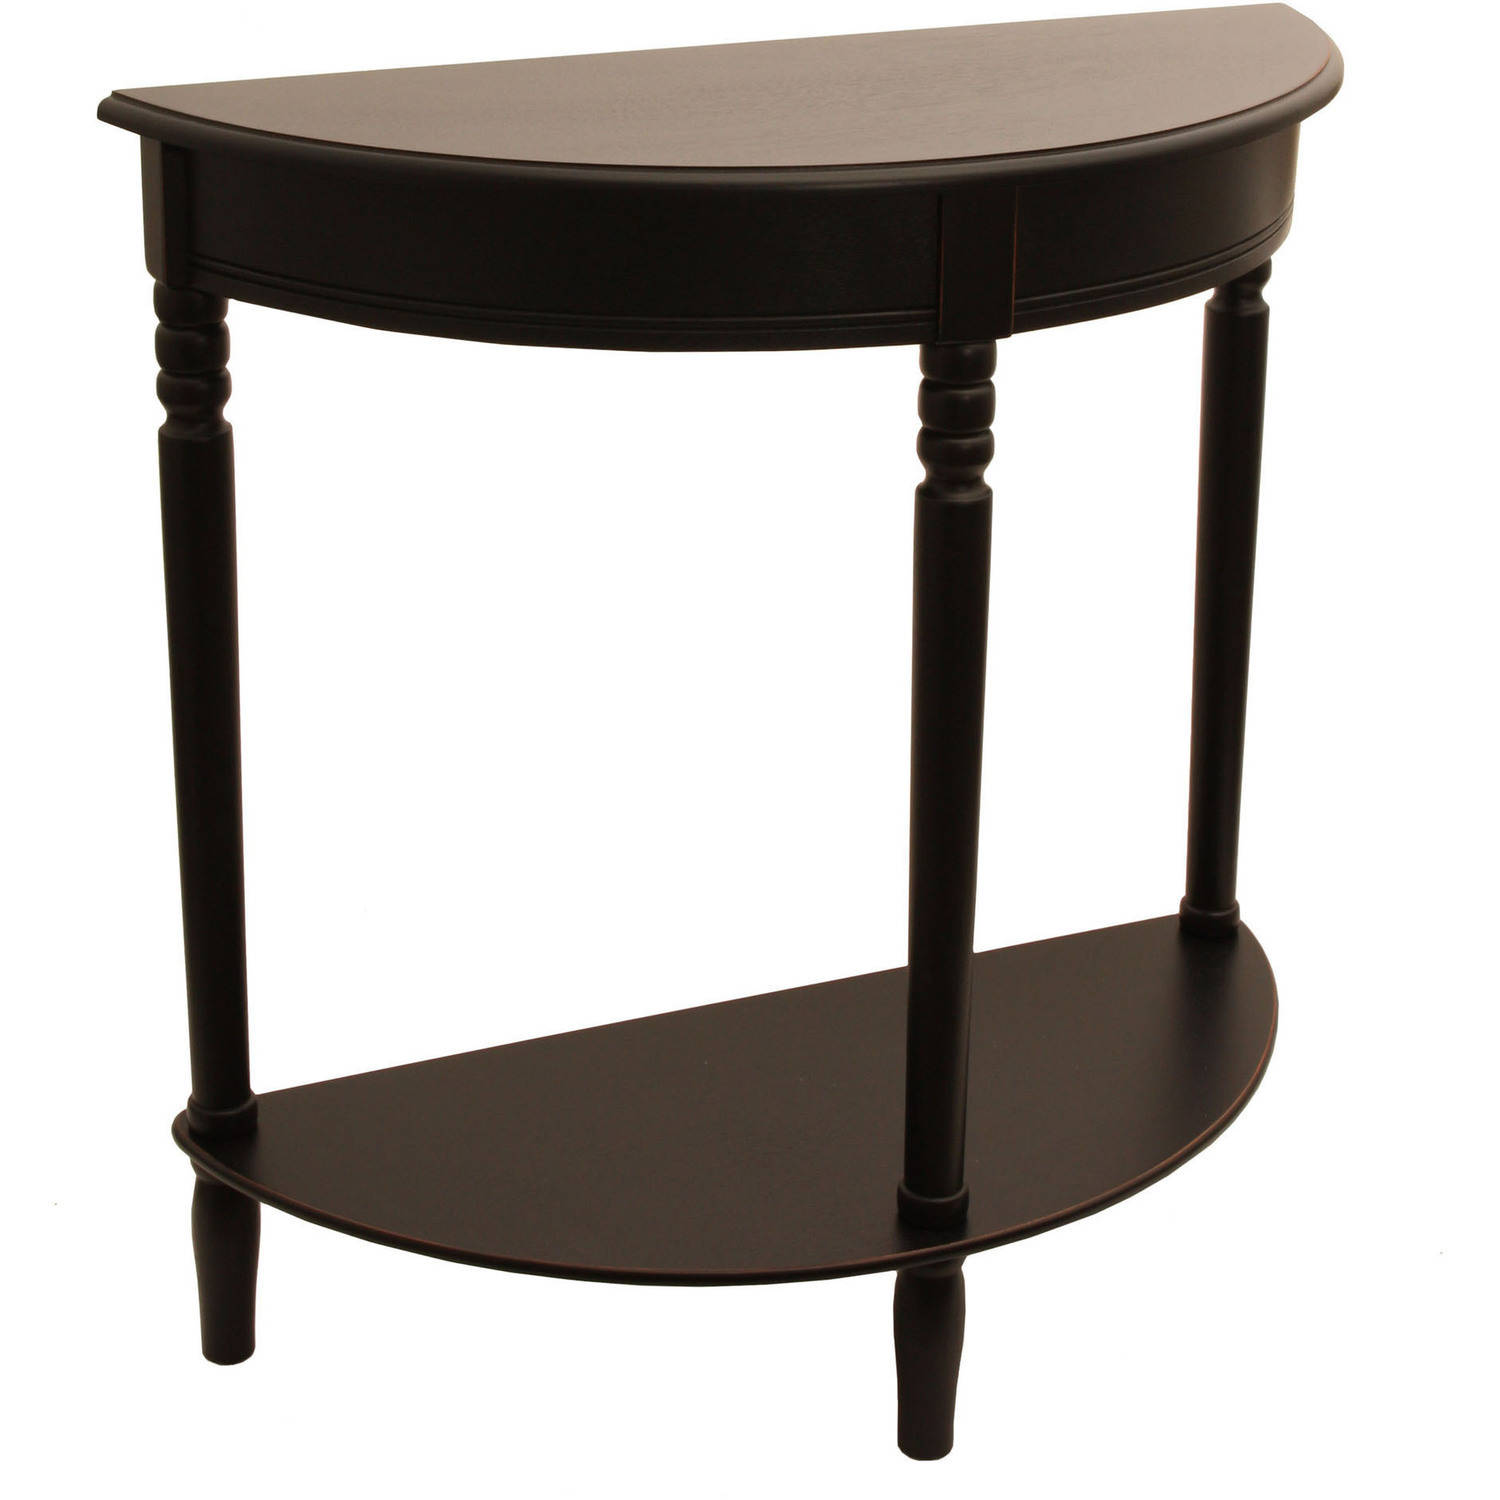 semi circle sofa for bay window replacement cushions feather half round console table multiple finishes ebay